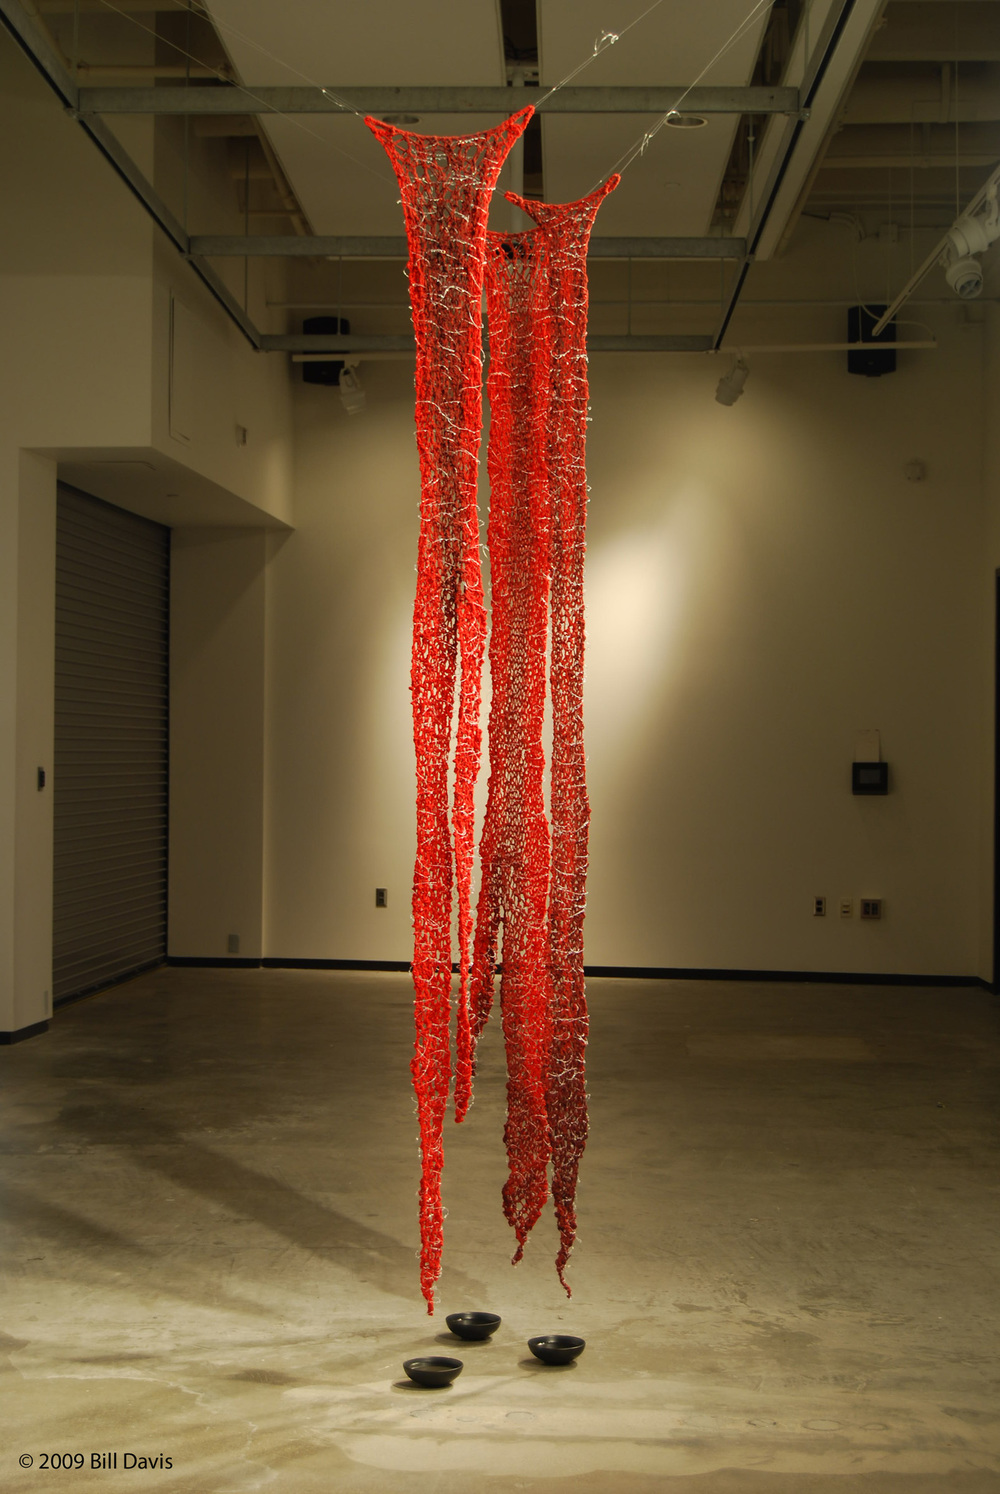 Indrani Nayar - Gall  Loosing Dawn, 2008  Installation; Red Yarn, hand coloring, fishing line, hot glue  Dimensions Variable, approx. 8.5ft H